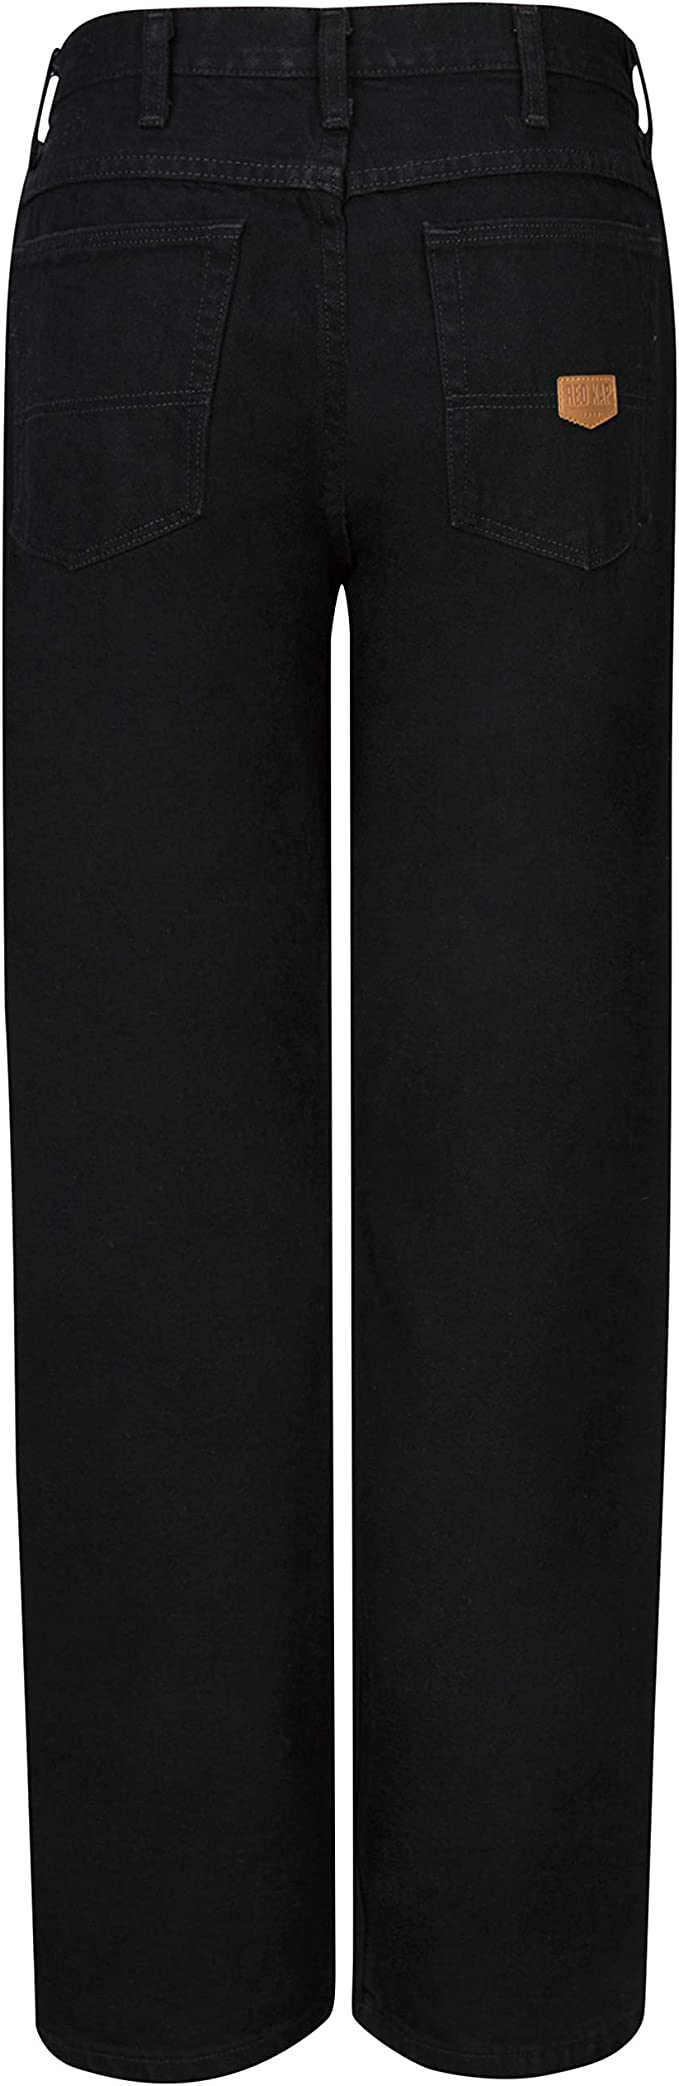 Red Kap Men S Relaxed Fit Jean At Amazon Men S Clothing Store